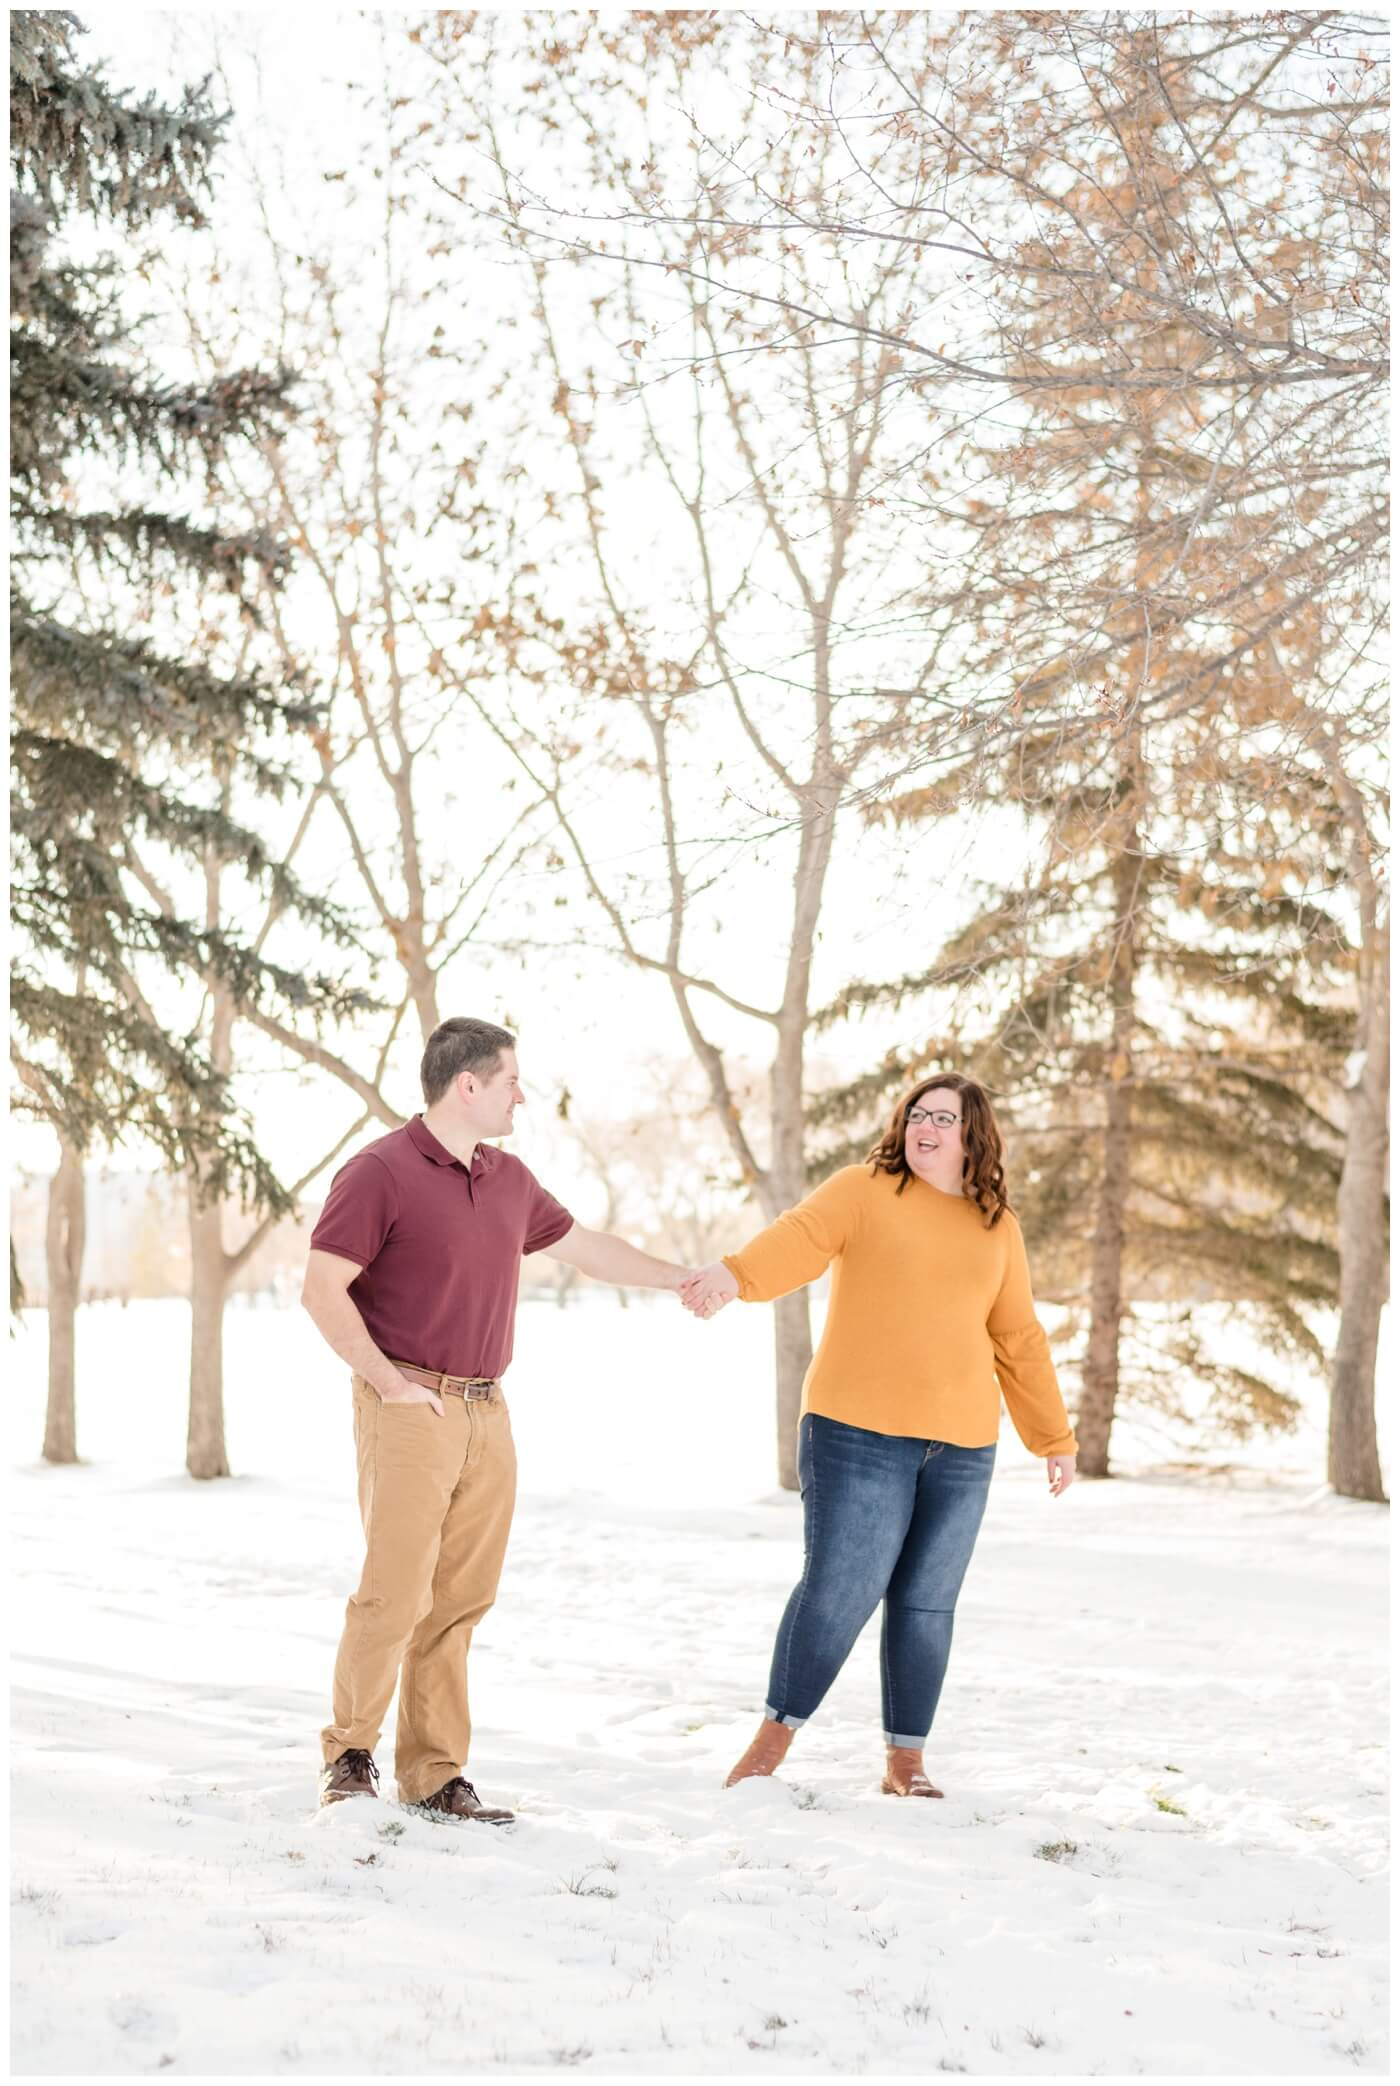 Regina Family Photographer - Goudy Family - Winter Family Session - Snow - Mustard Sweater with Blue Jeans - Candy Cane Park